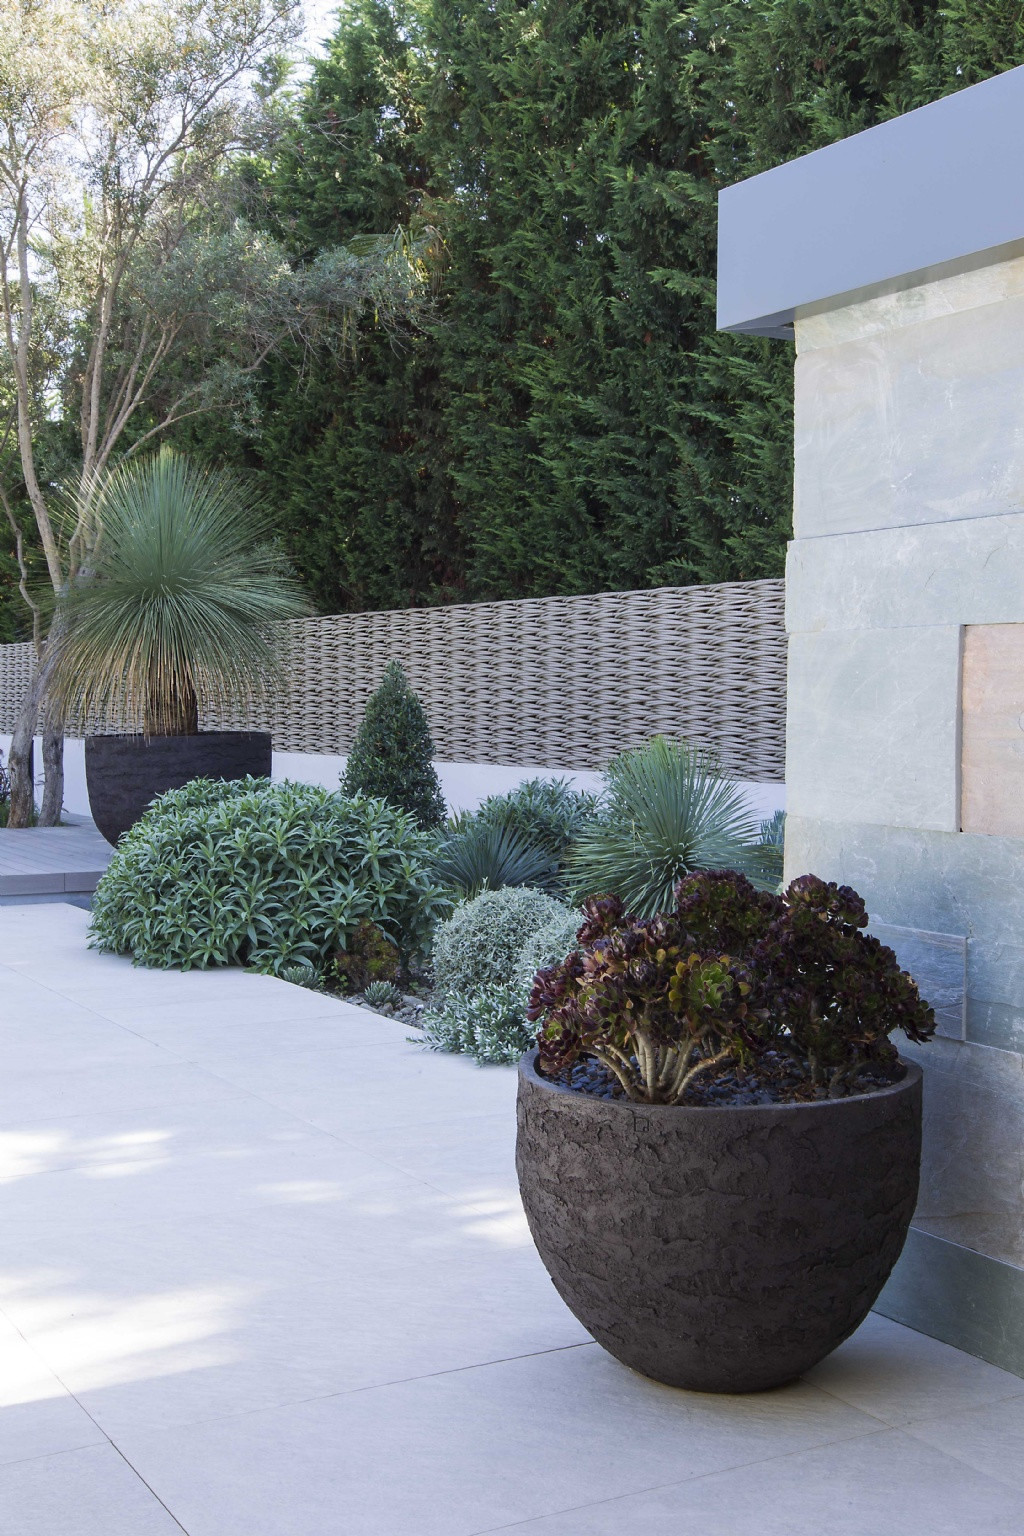 17 Stylish Vase Shaped Evergreen Shrubs 2021 free download vase shaped evergreen shrubs of atelier vierkant in private house